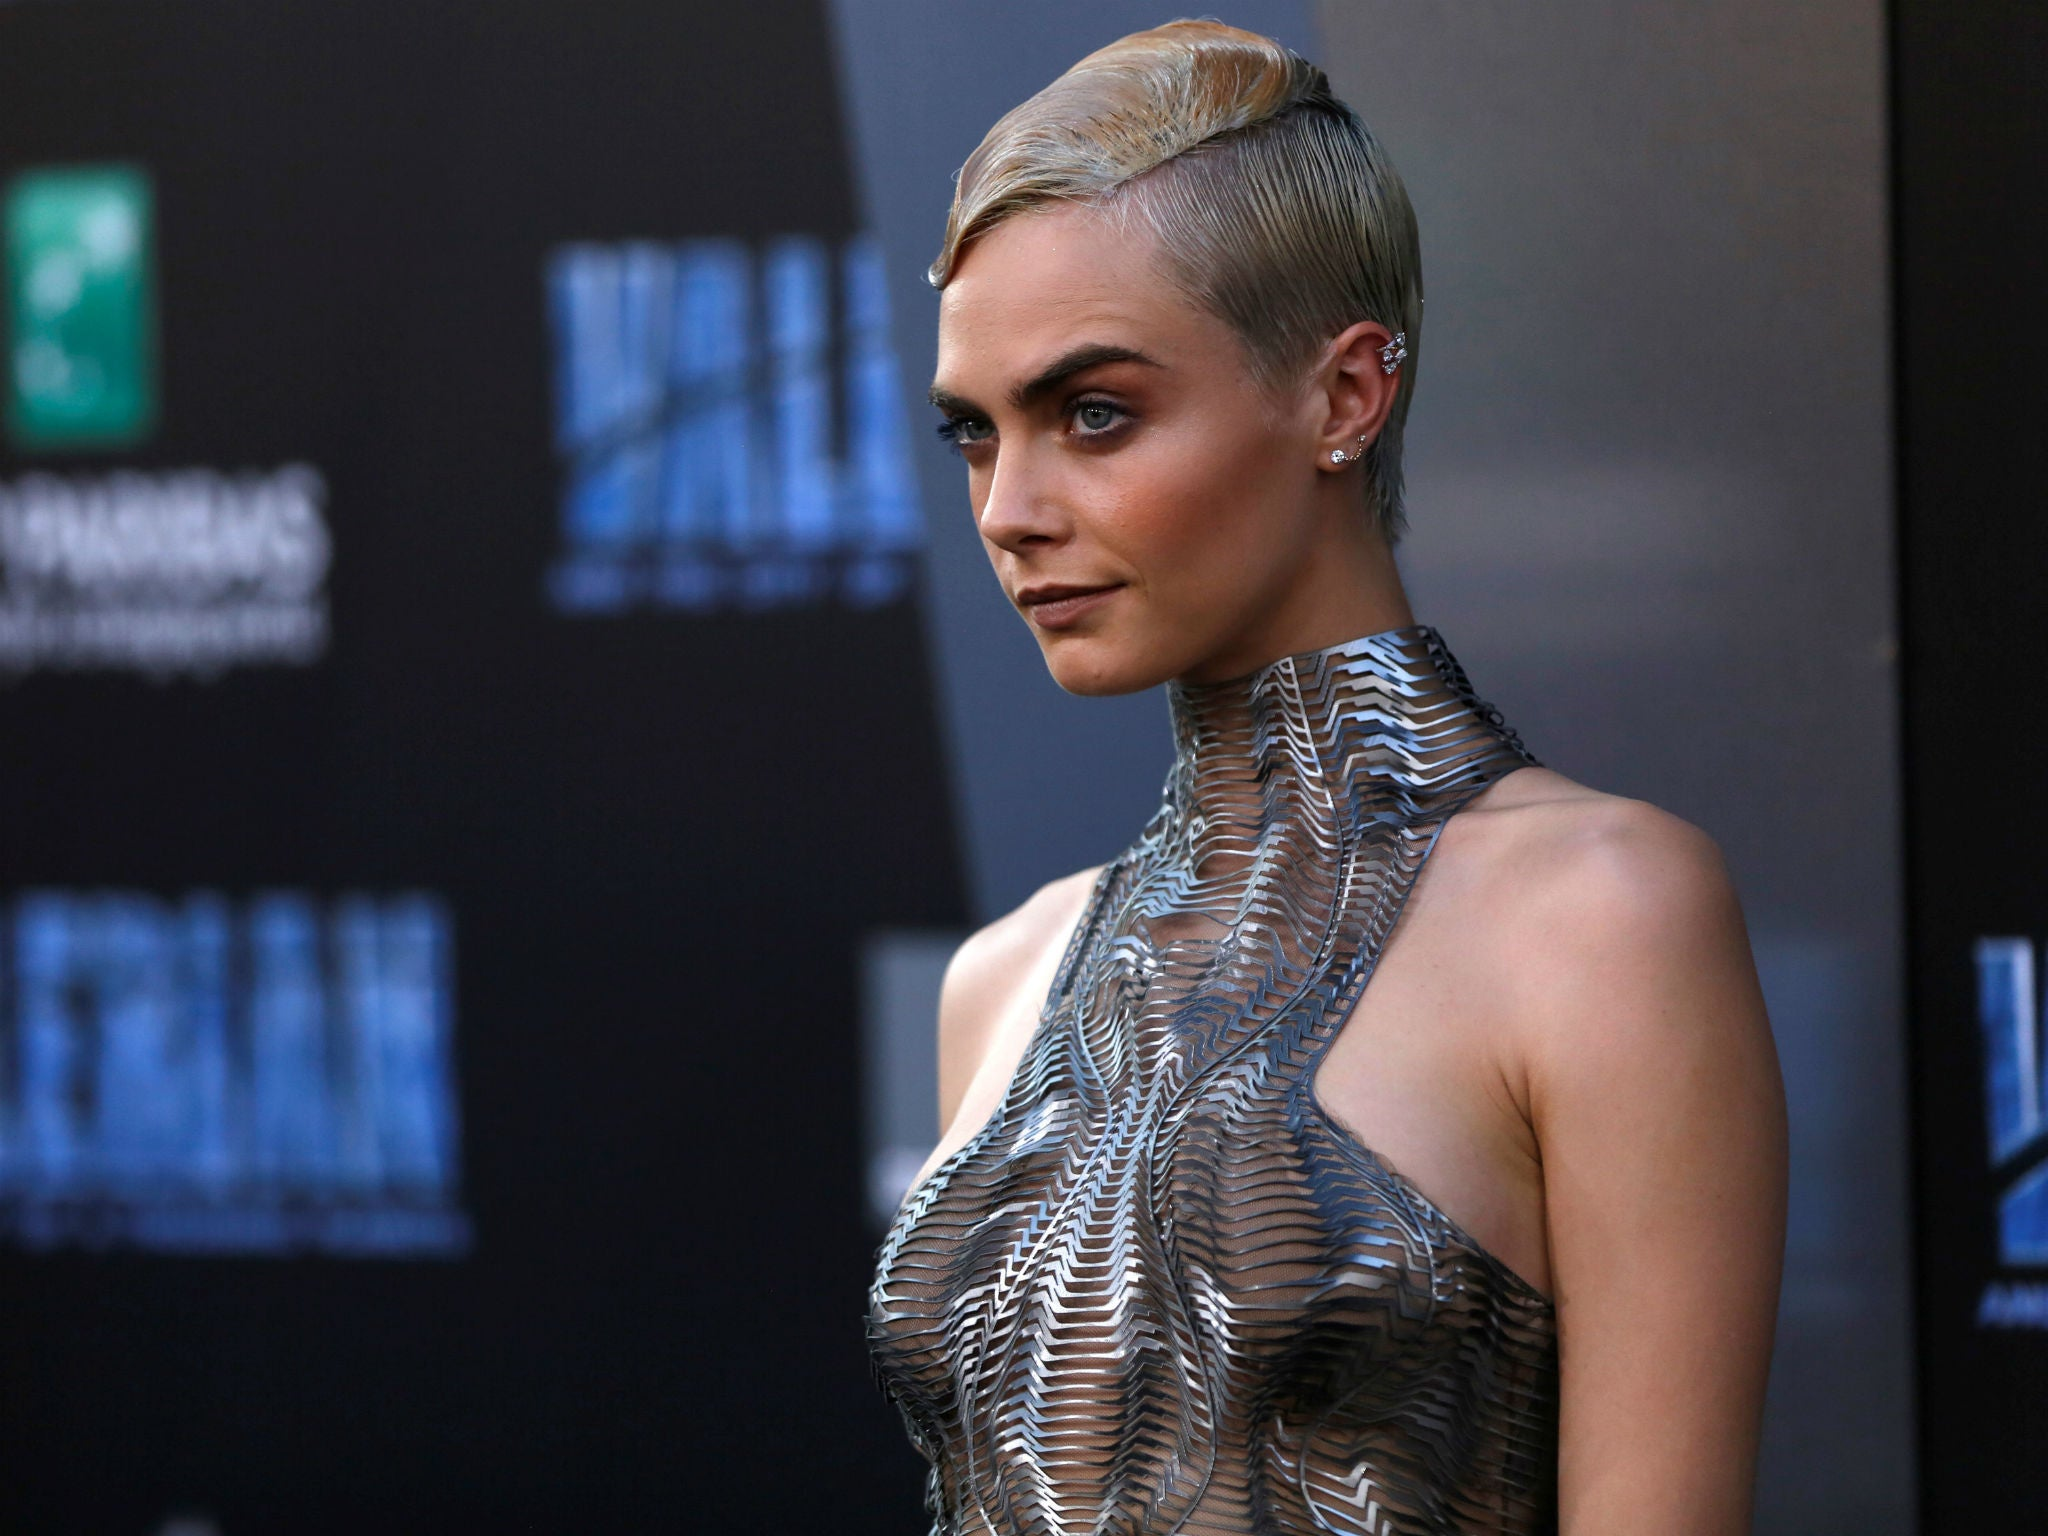 Cara Delevingne Claims Harvey Weinstein Tried To Make Her Kiss